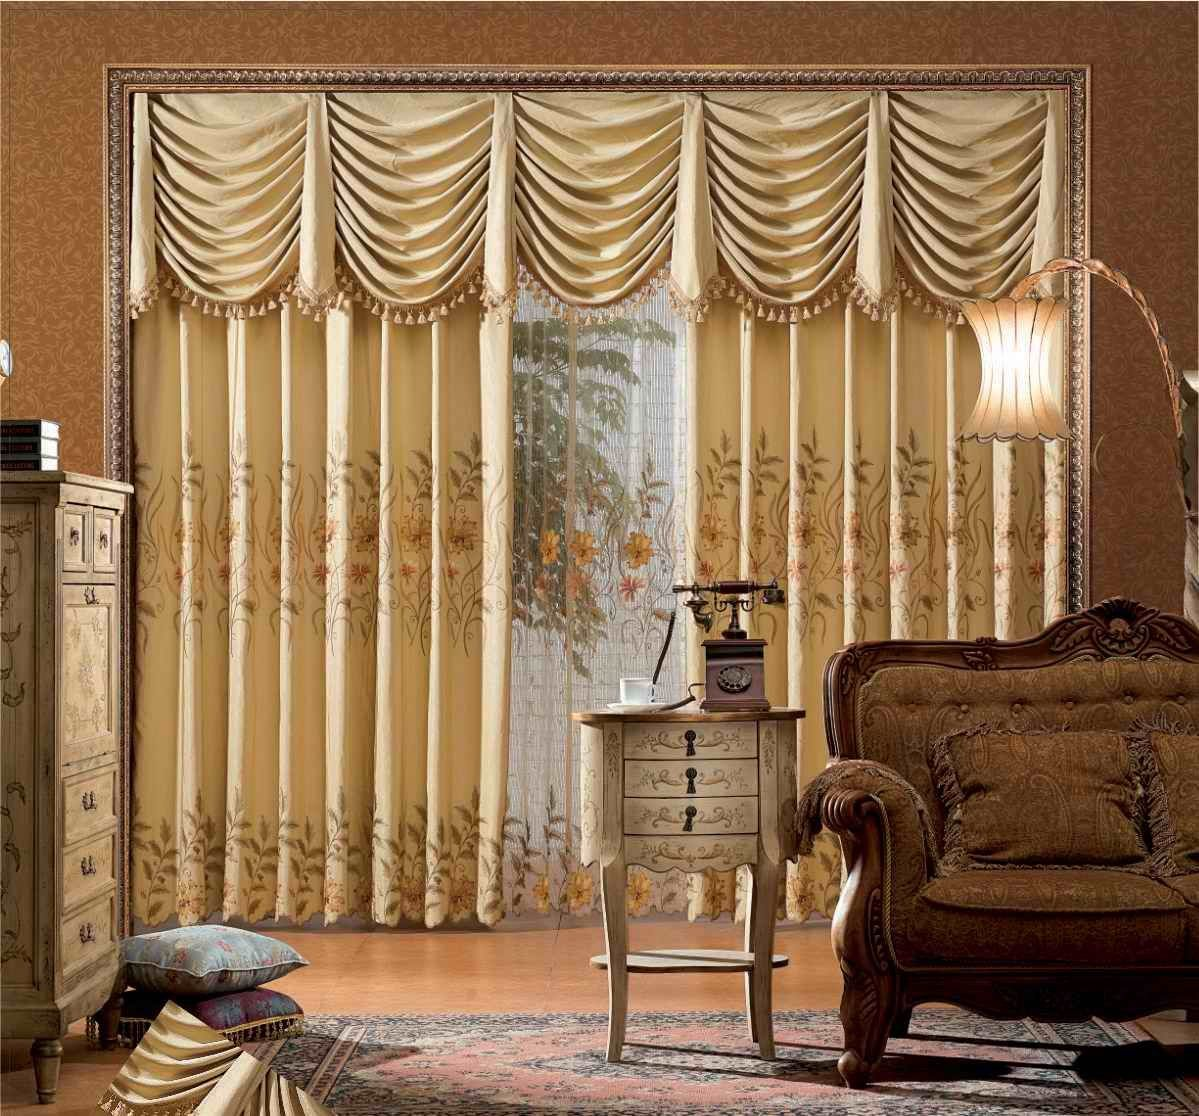 Curtain Designs For Living Room Fascinating Make Modern Living Room Curtains  Httphighlifestylewp 2018